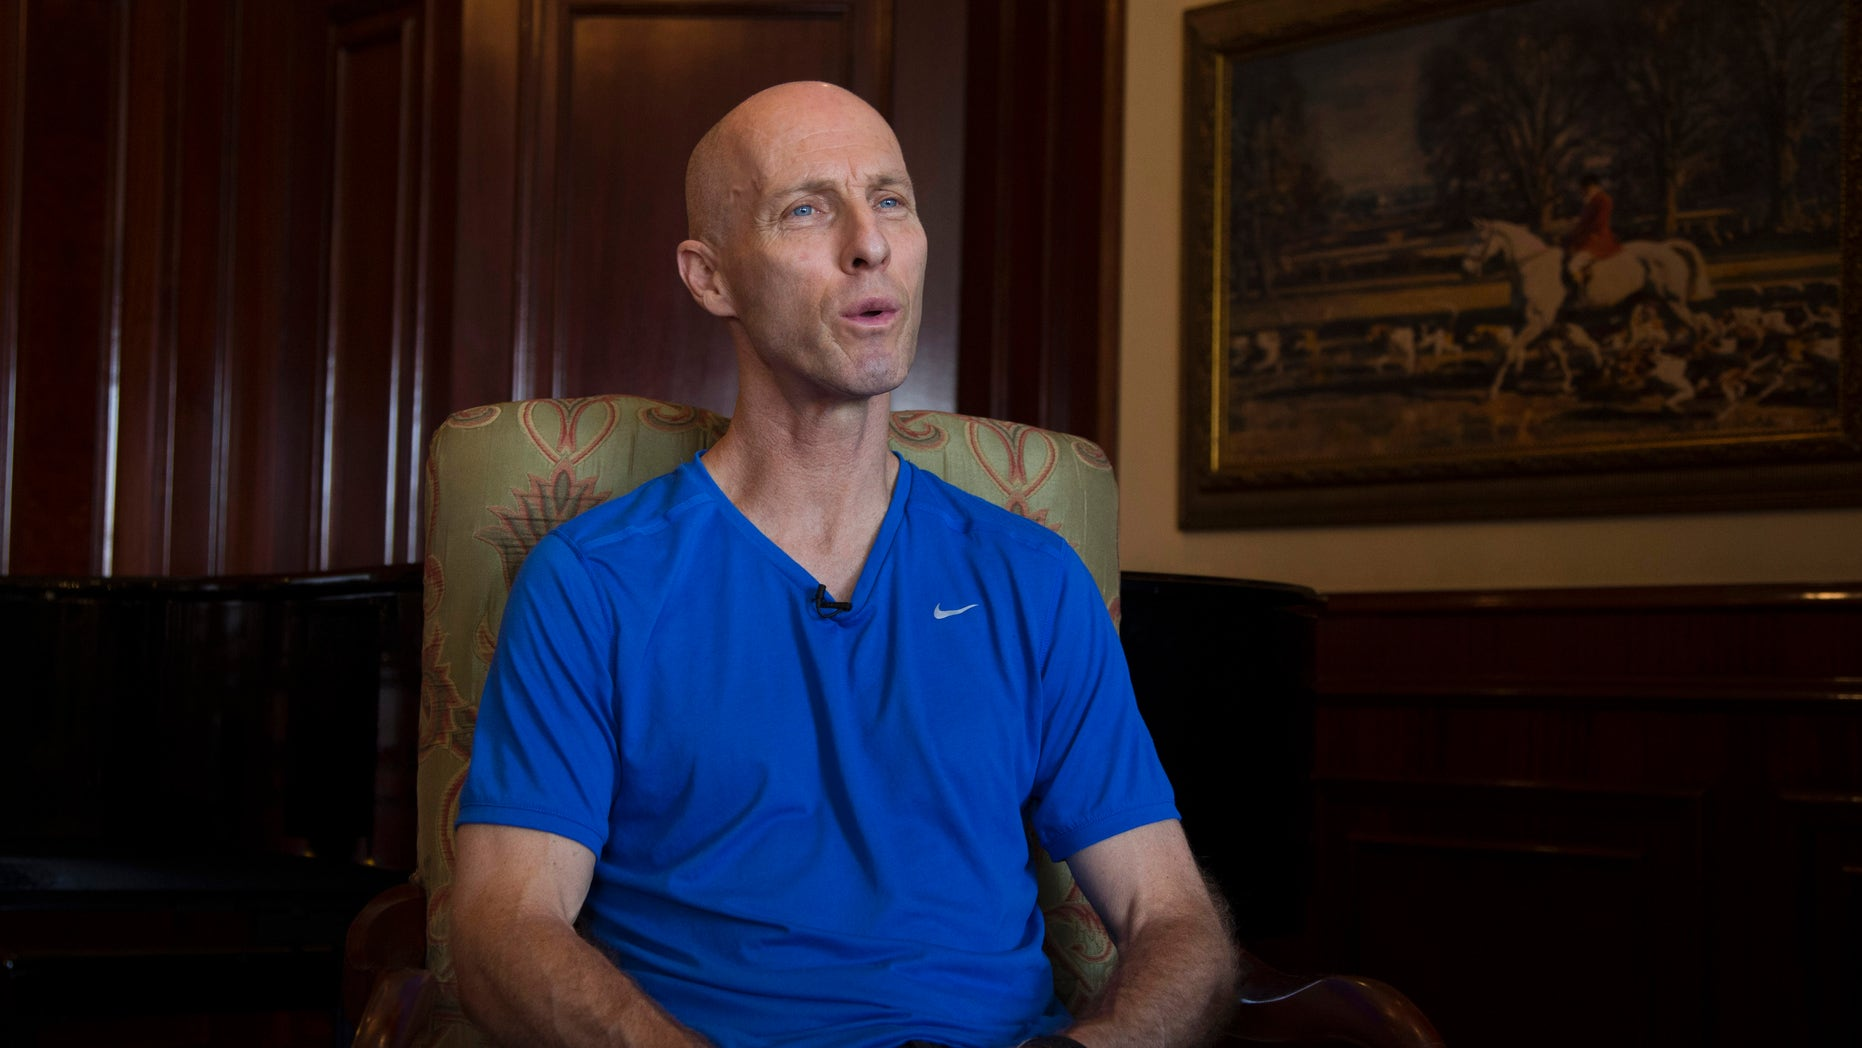 In this Sunday, Oct. 20, 2013 photo, Bob Bradley from the US, Egypt's national team coach talks, during an interview with The Associated Press, in Cairo, Egypt. With Egypt still reeling from a 6-1 loss to Ghana in a World Cup playoff, the team's American coach is hoping to restore some pride to the bruised national side. It's unclear, however, if Bob Bradley will even get the chance to do that.  (AP Photo/Hassan Ammar)